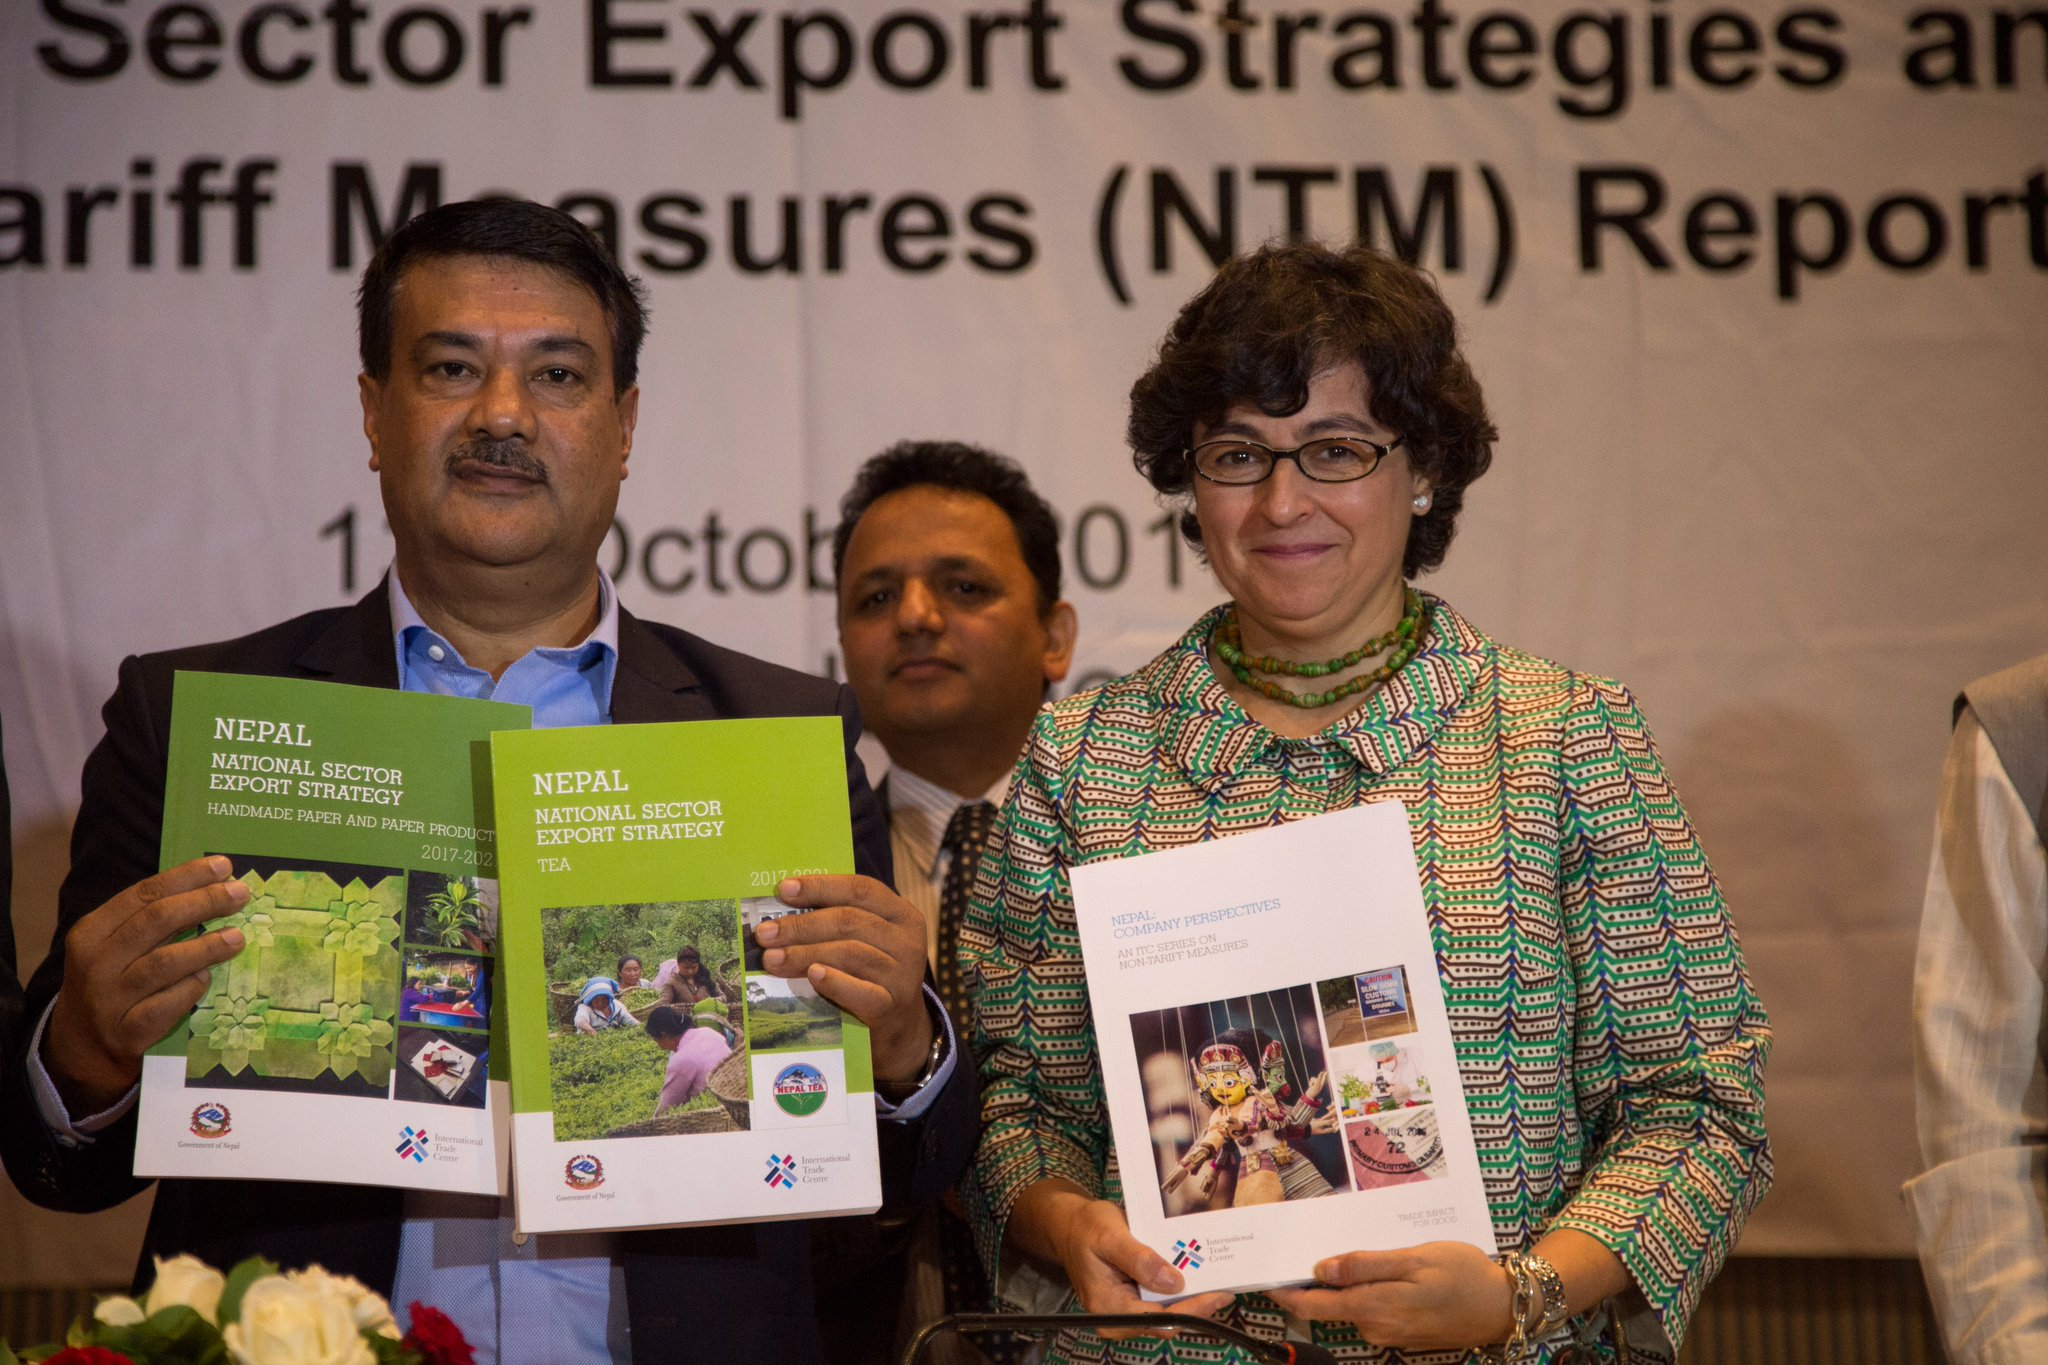 Nepal unveils National Sector Export Strategies and business survey on non-tariff measures